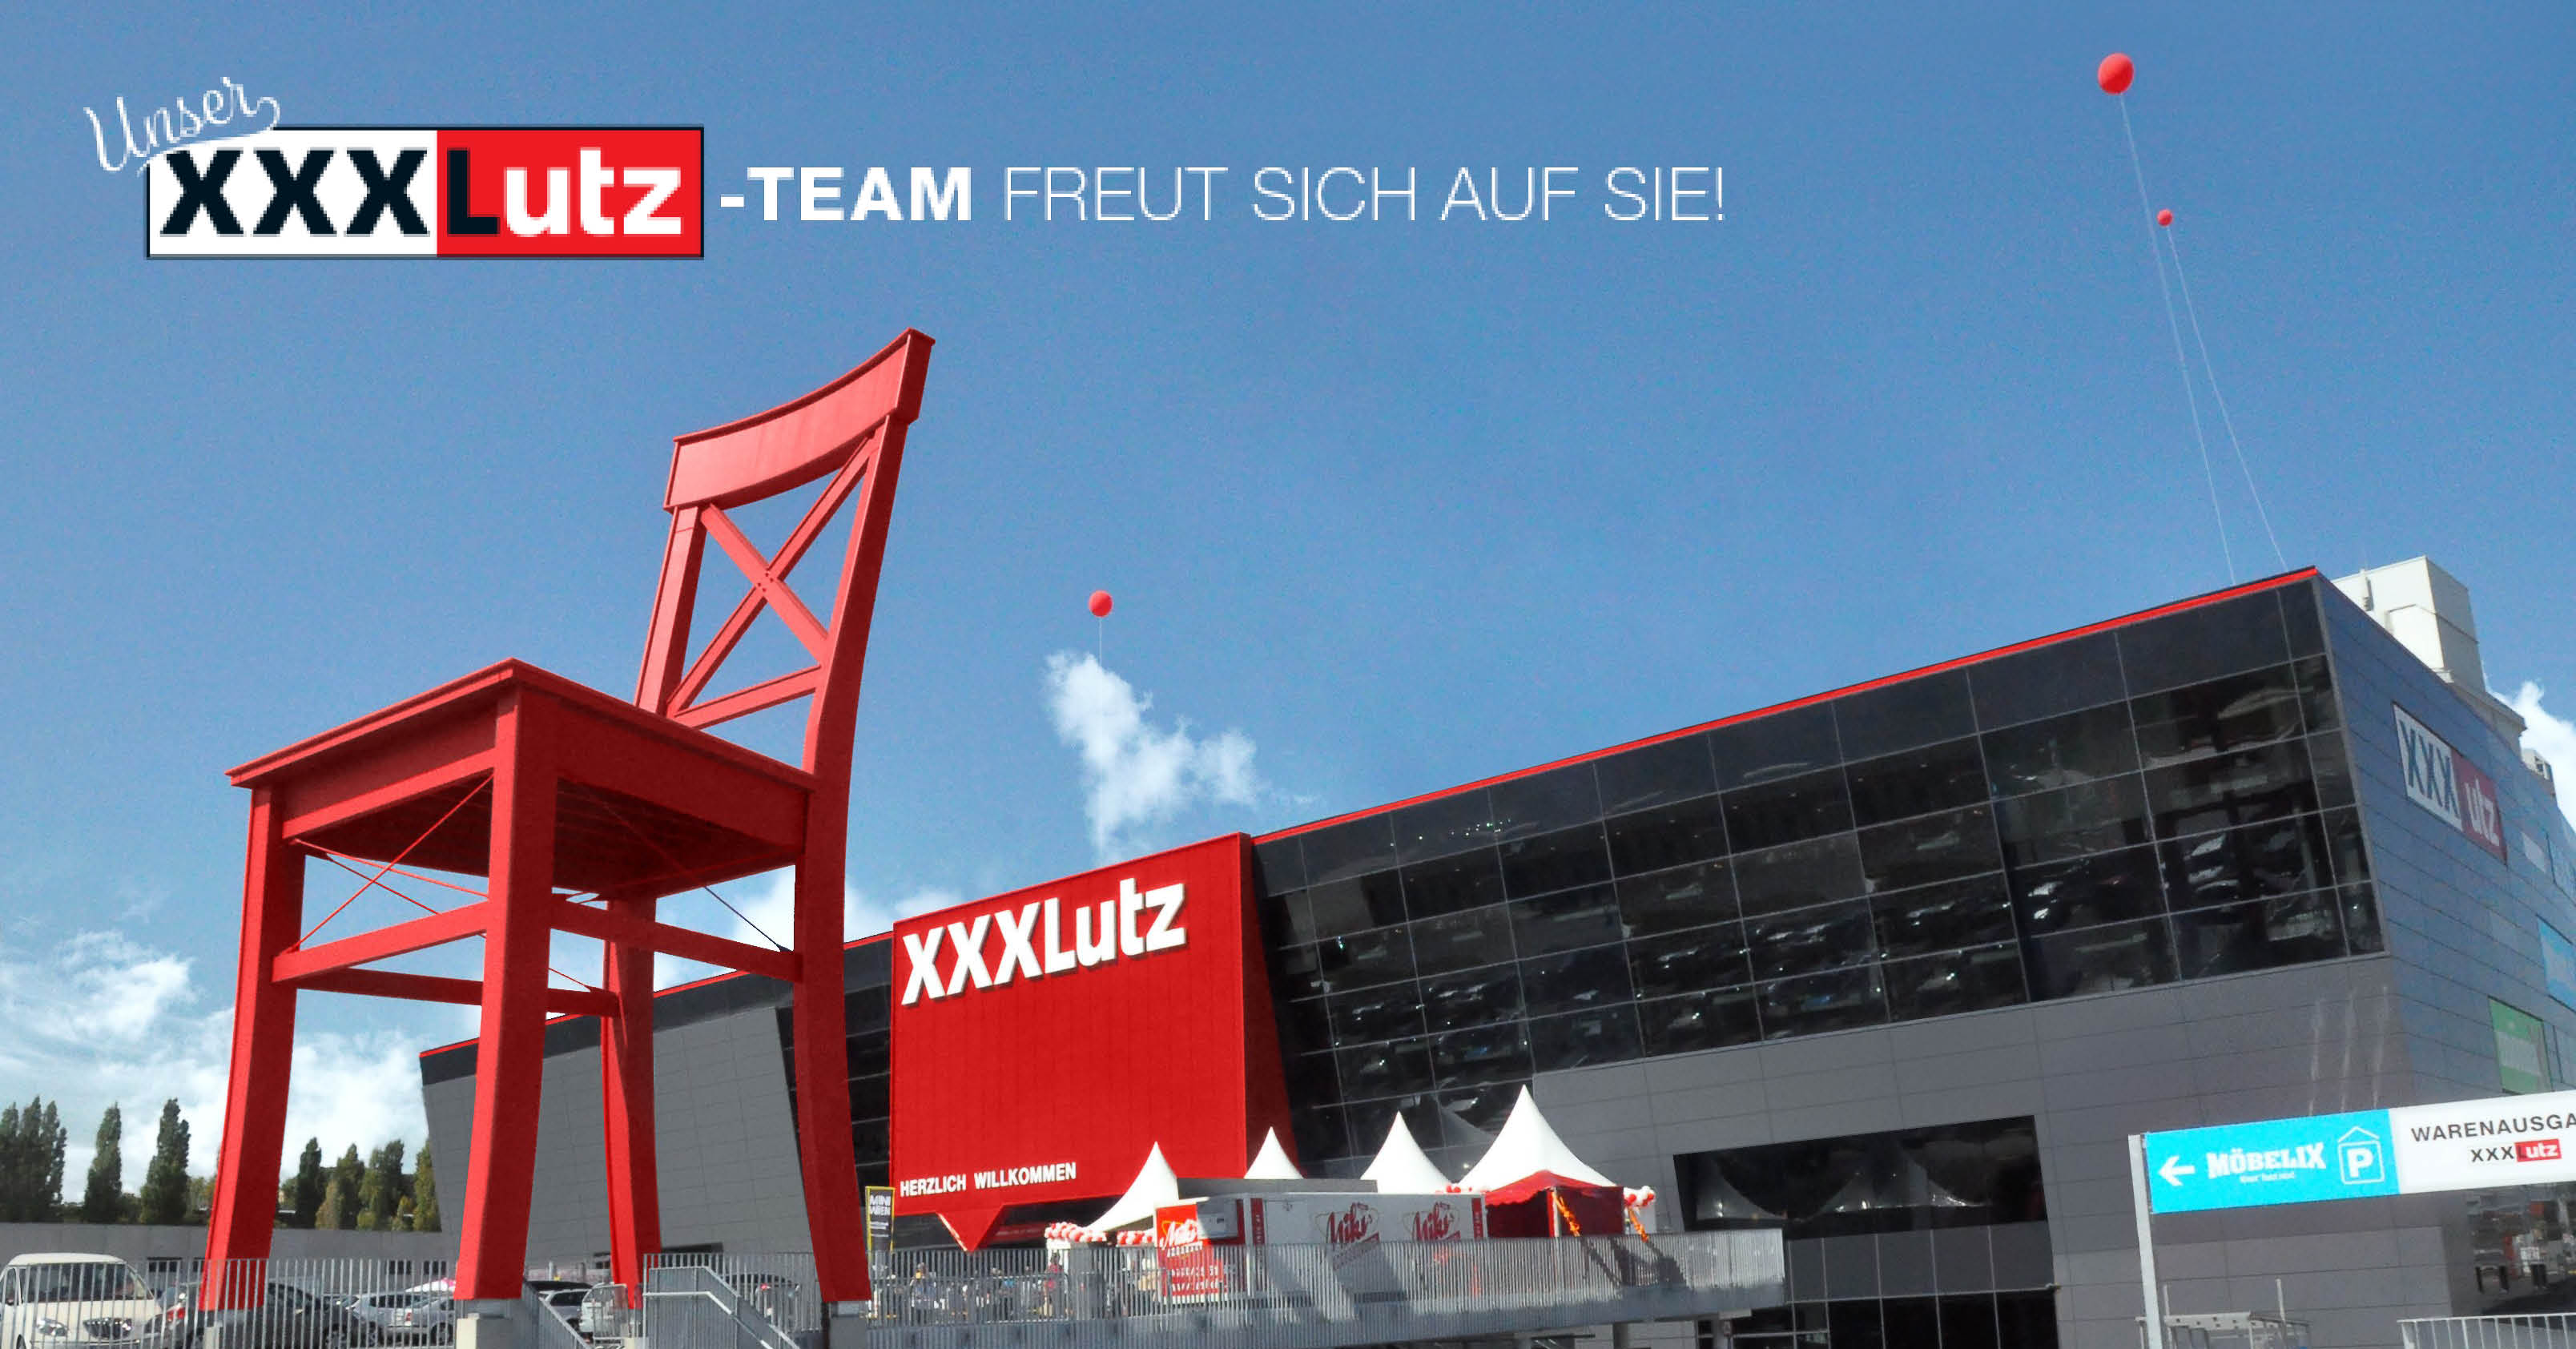 Xxl Lutz Innsbruck Jobs Bei Xxxlutz Kg Tirolerjobs At